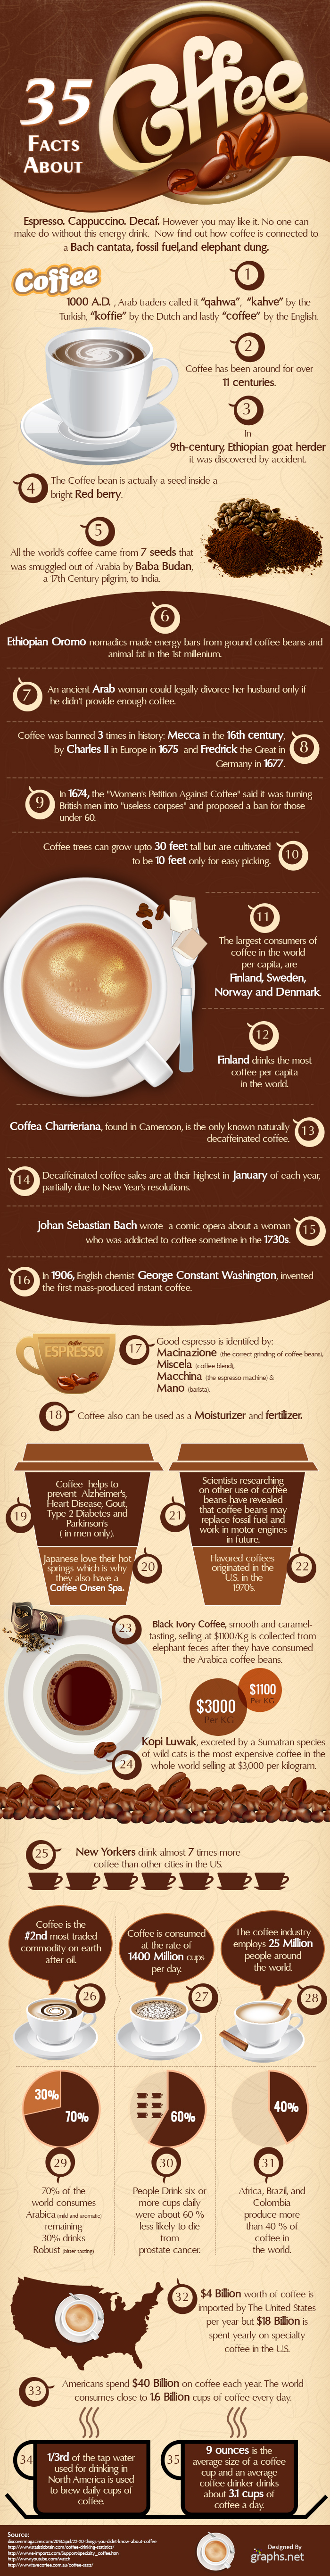 35 Facts About Coffee